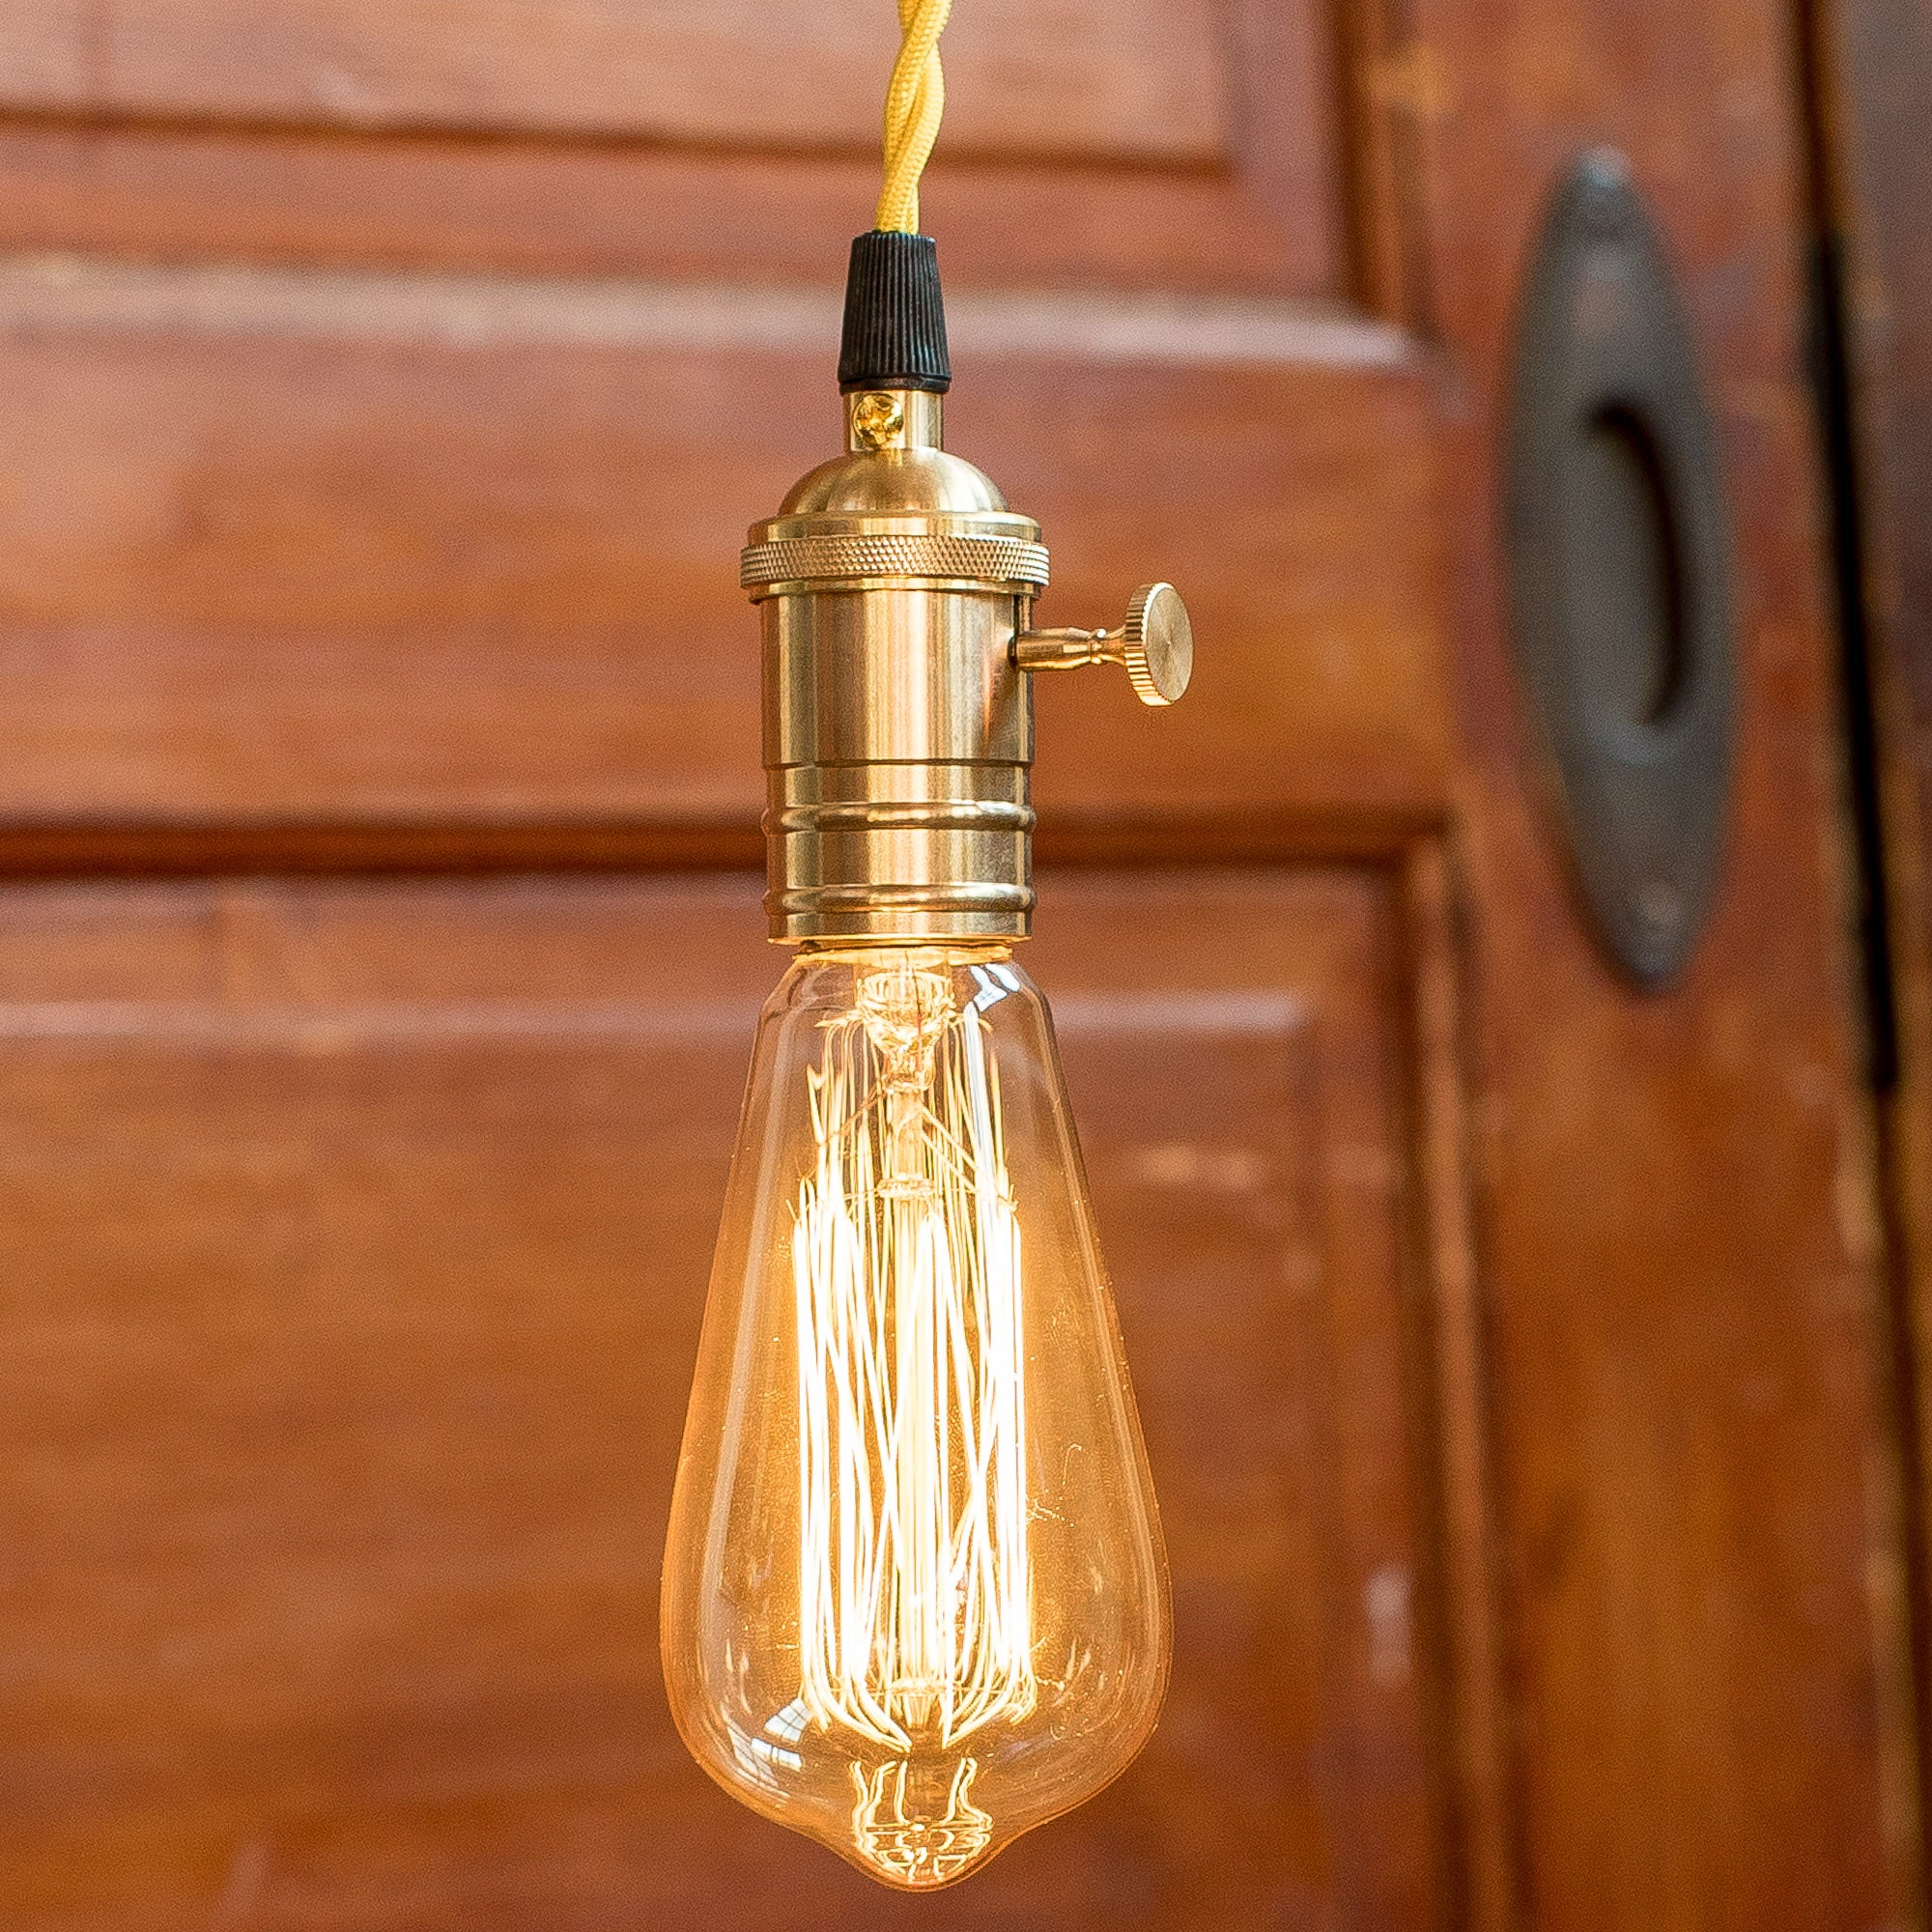 Braided and Twisted Light Cord for Edison Bulbs